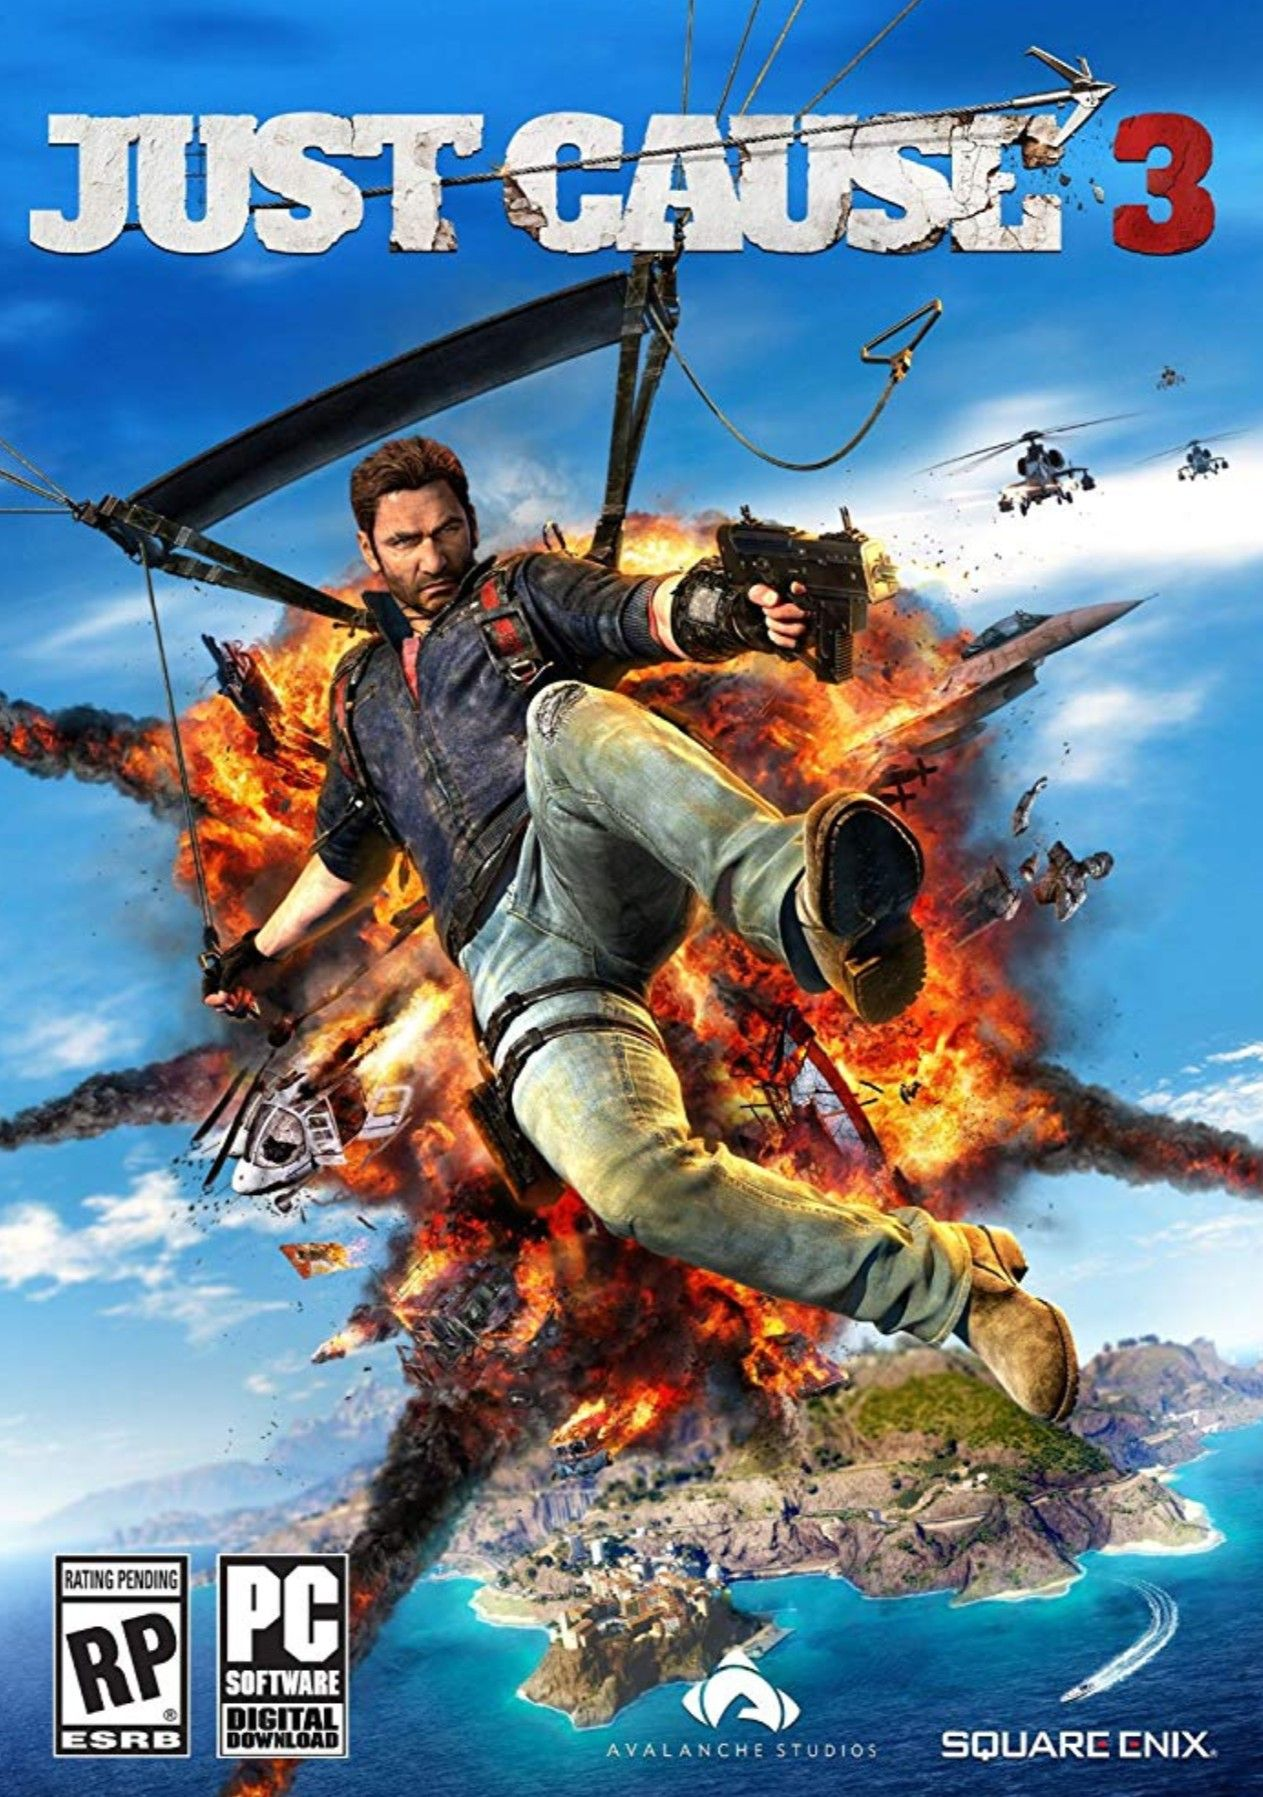 Pin by Adeeb Alnabulsi on Games in 2020 Just cause 3